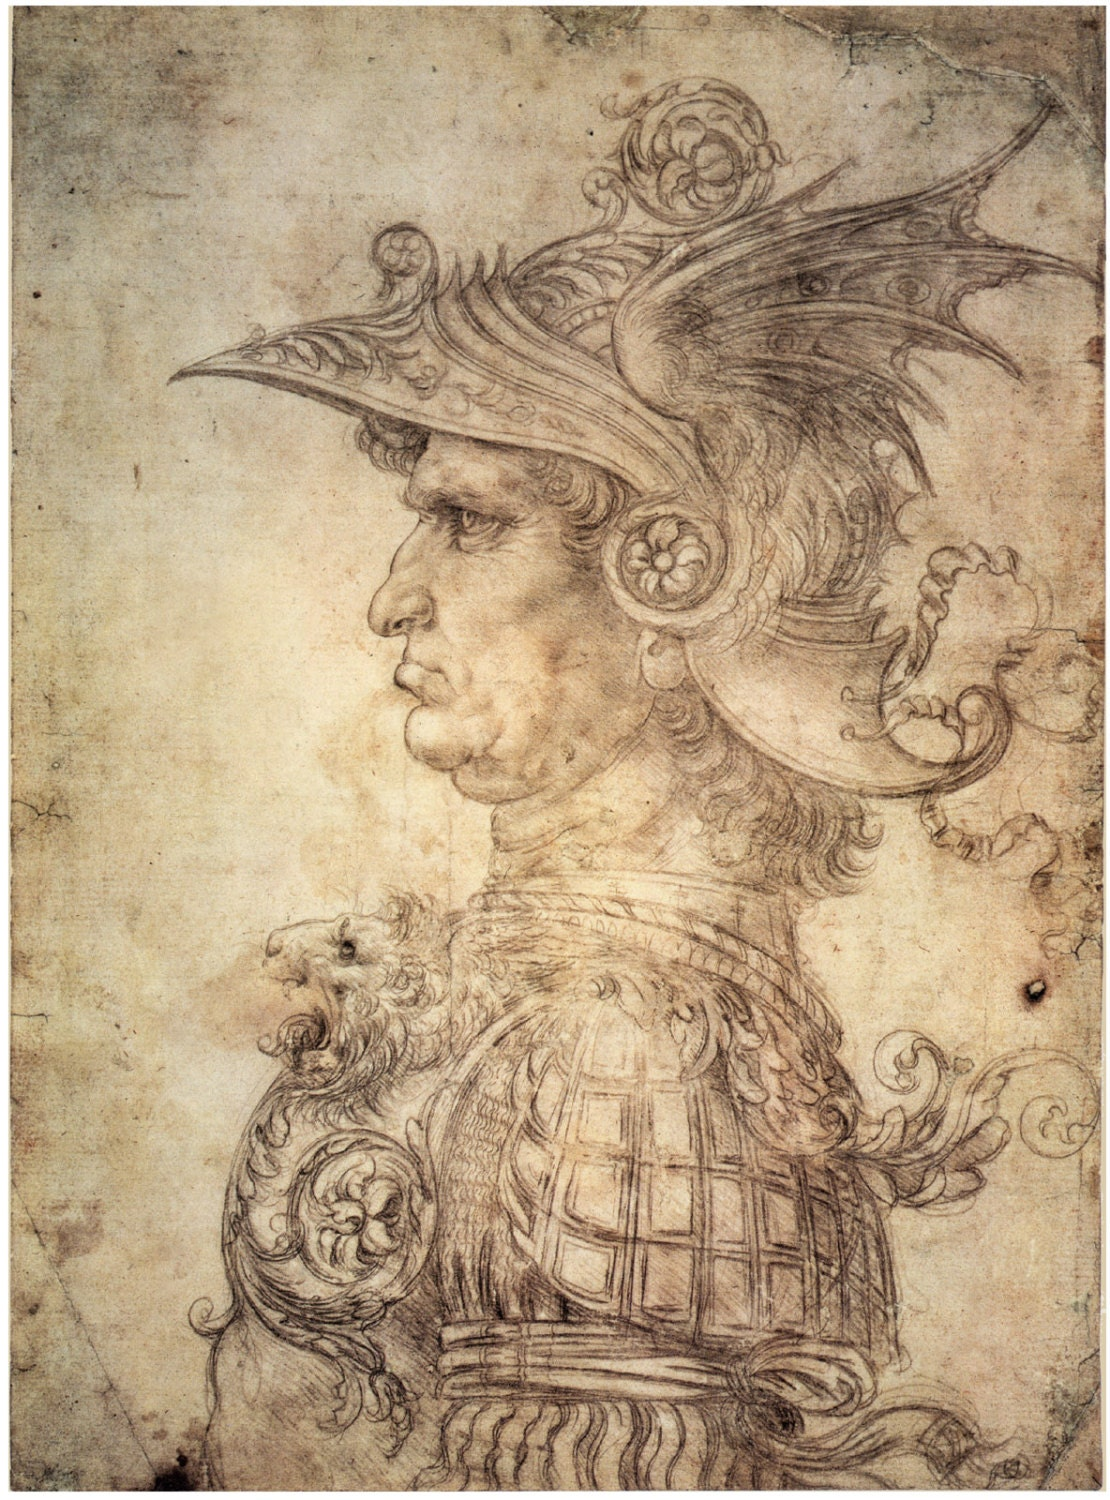 Fine Art Reproduction. Antique Warrior with Helmet in Profile